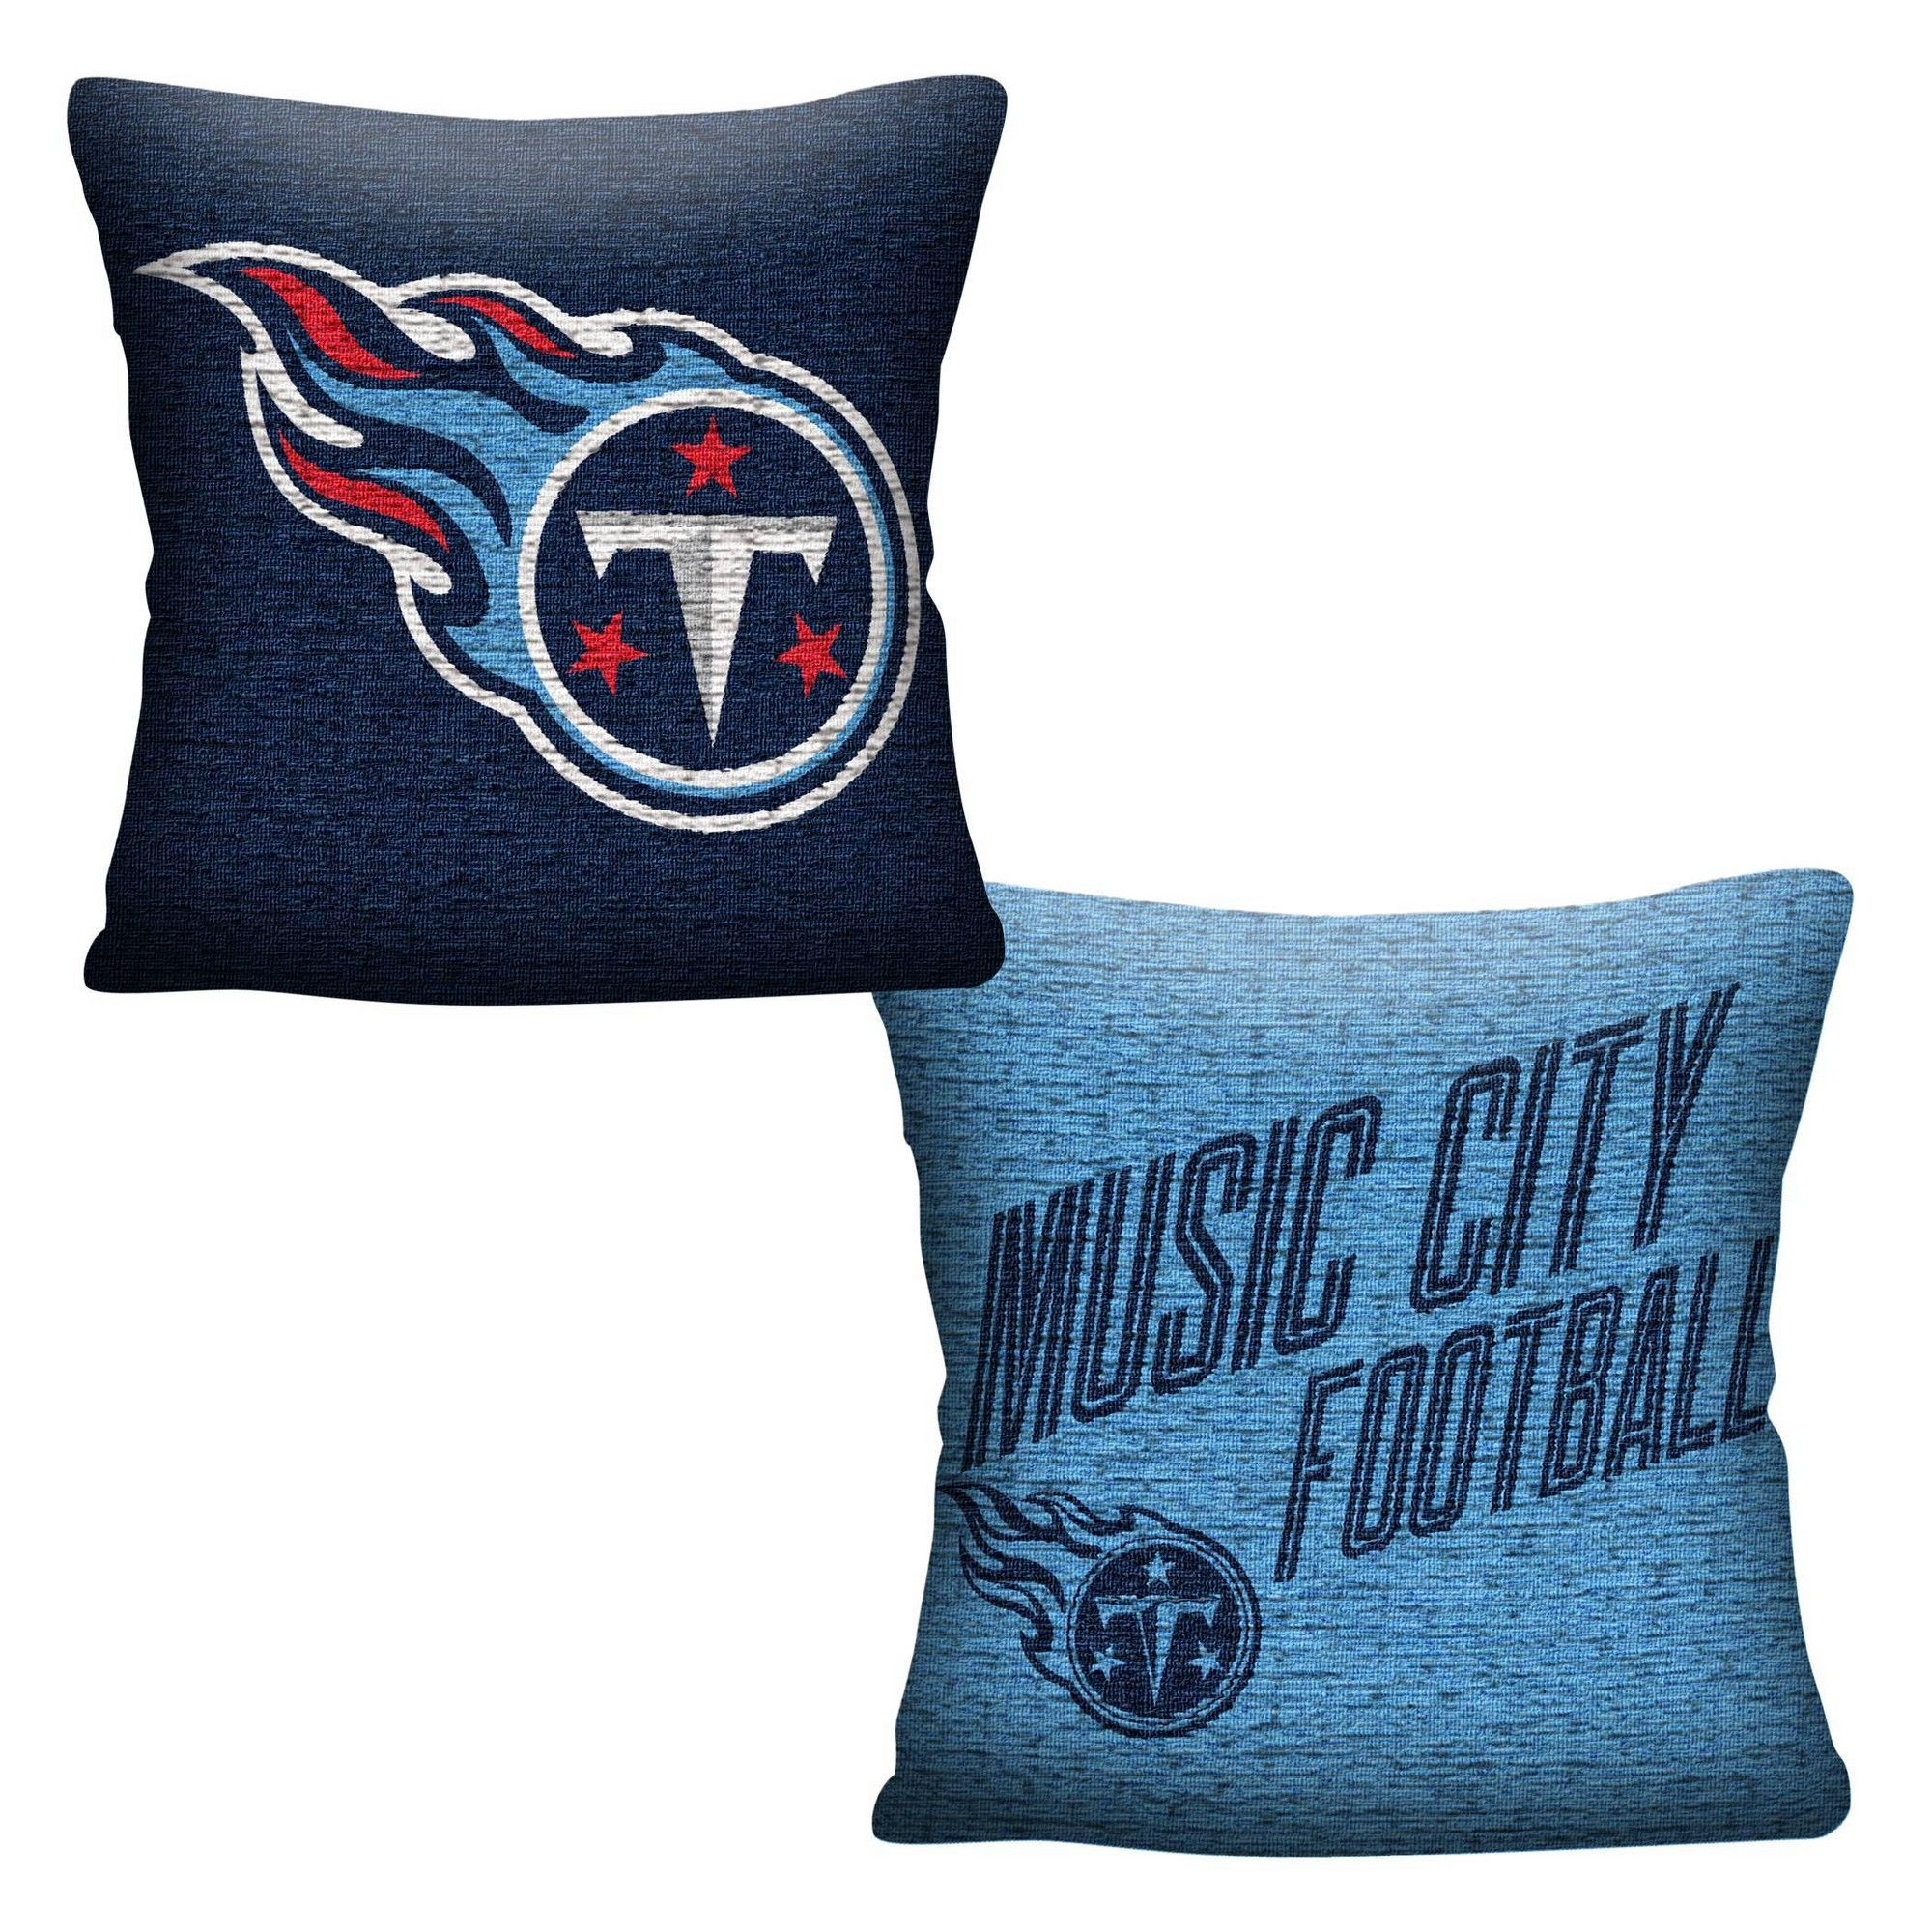 Nfl Tennessee Titans Inverted Woven Pillow Adult Unisex In 2020